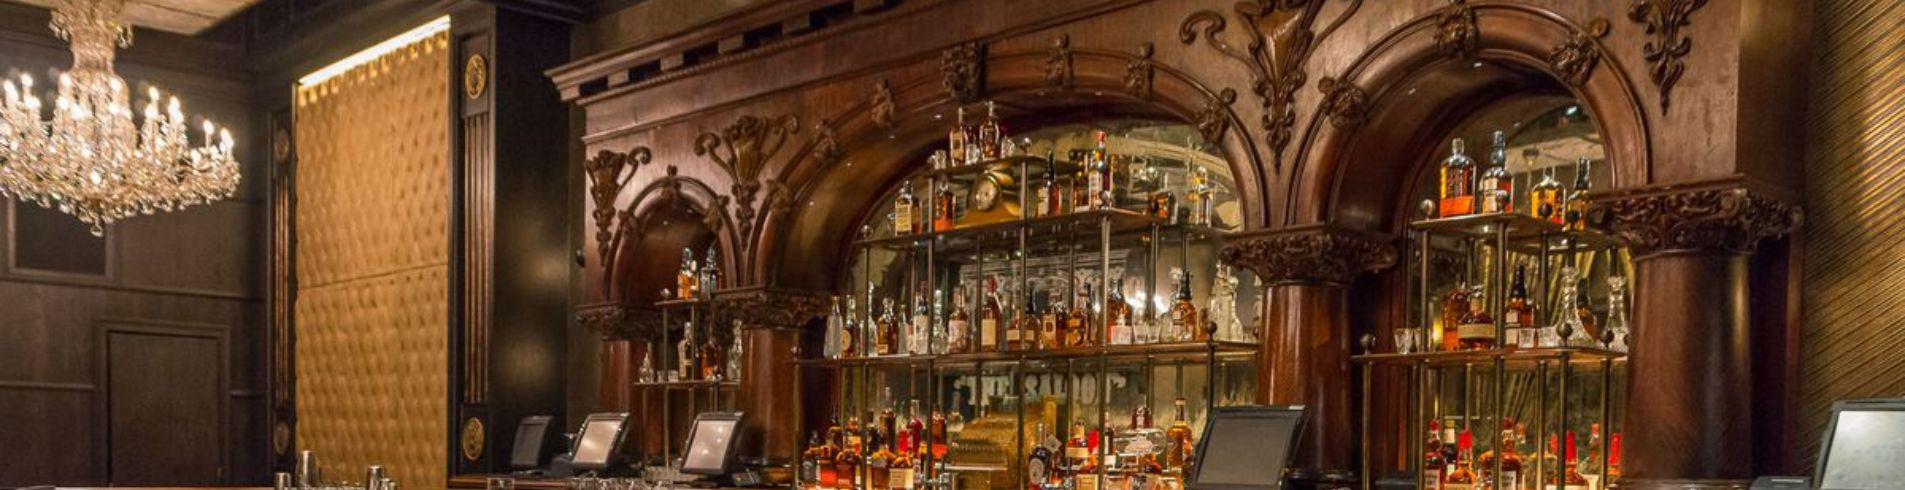 Photo of a bar with custom wood millwork.